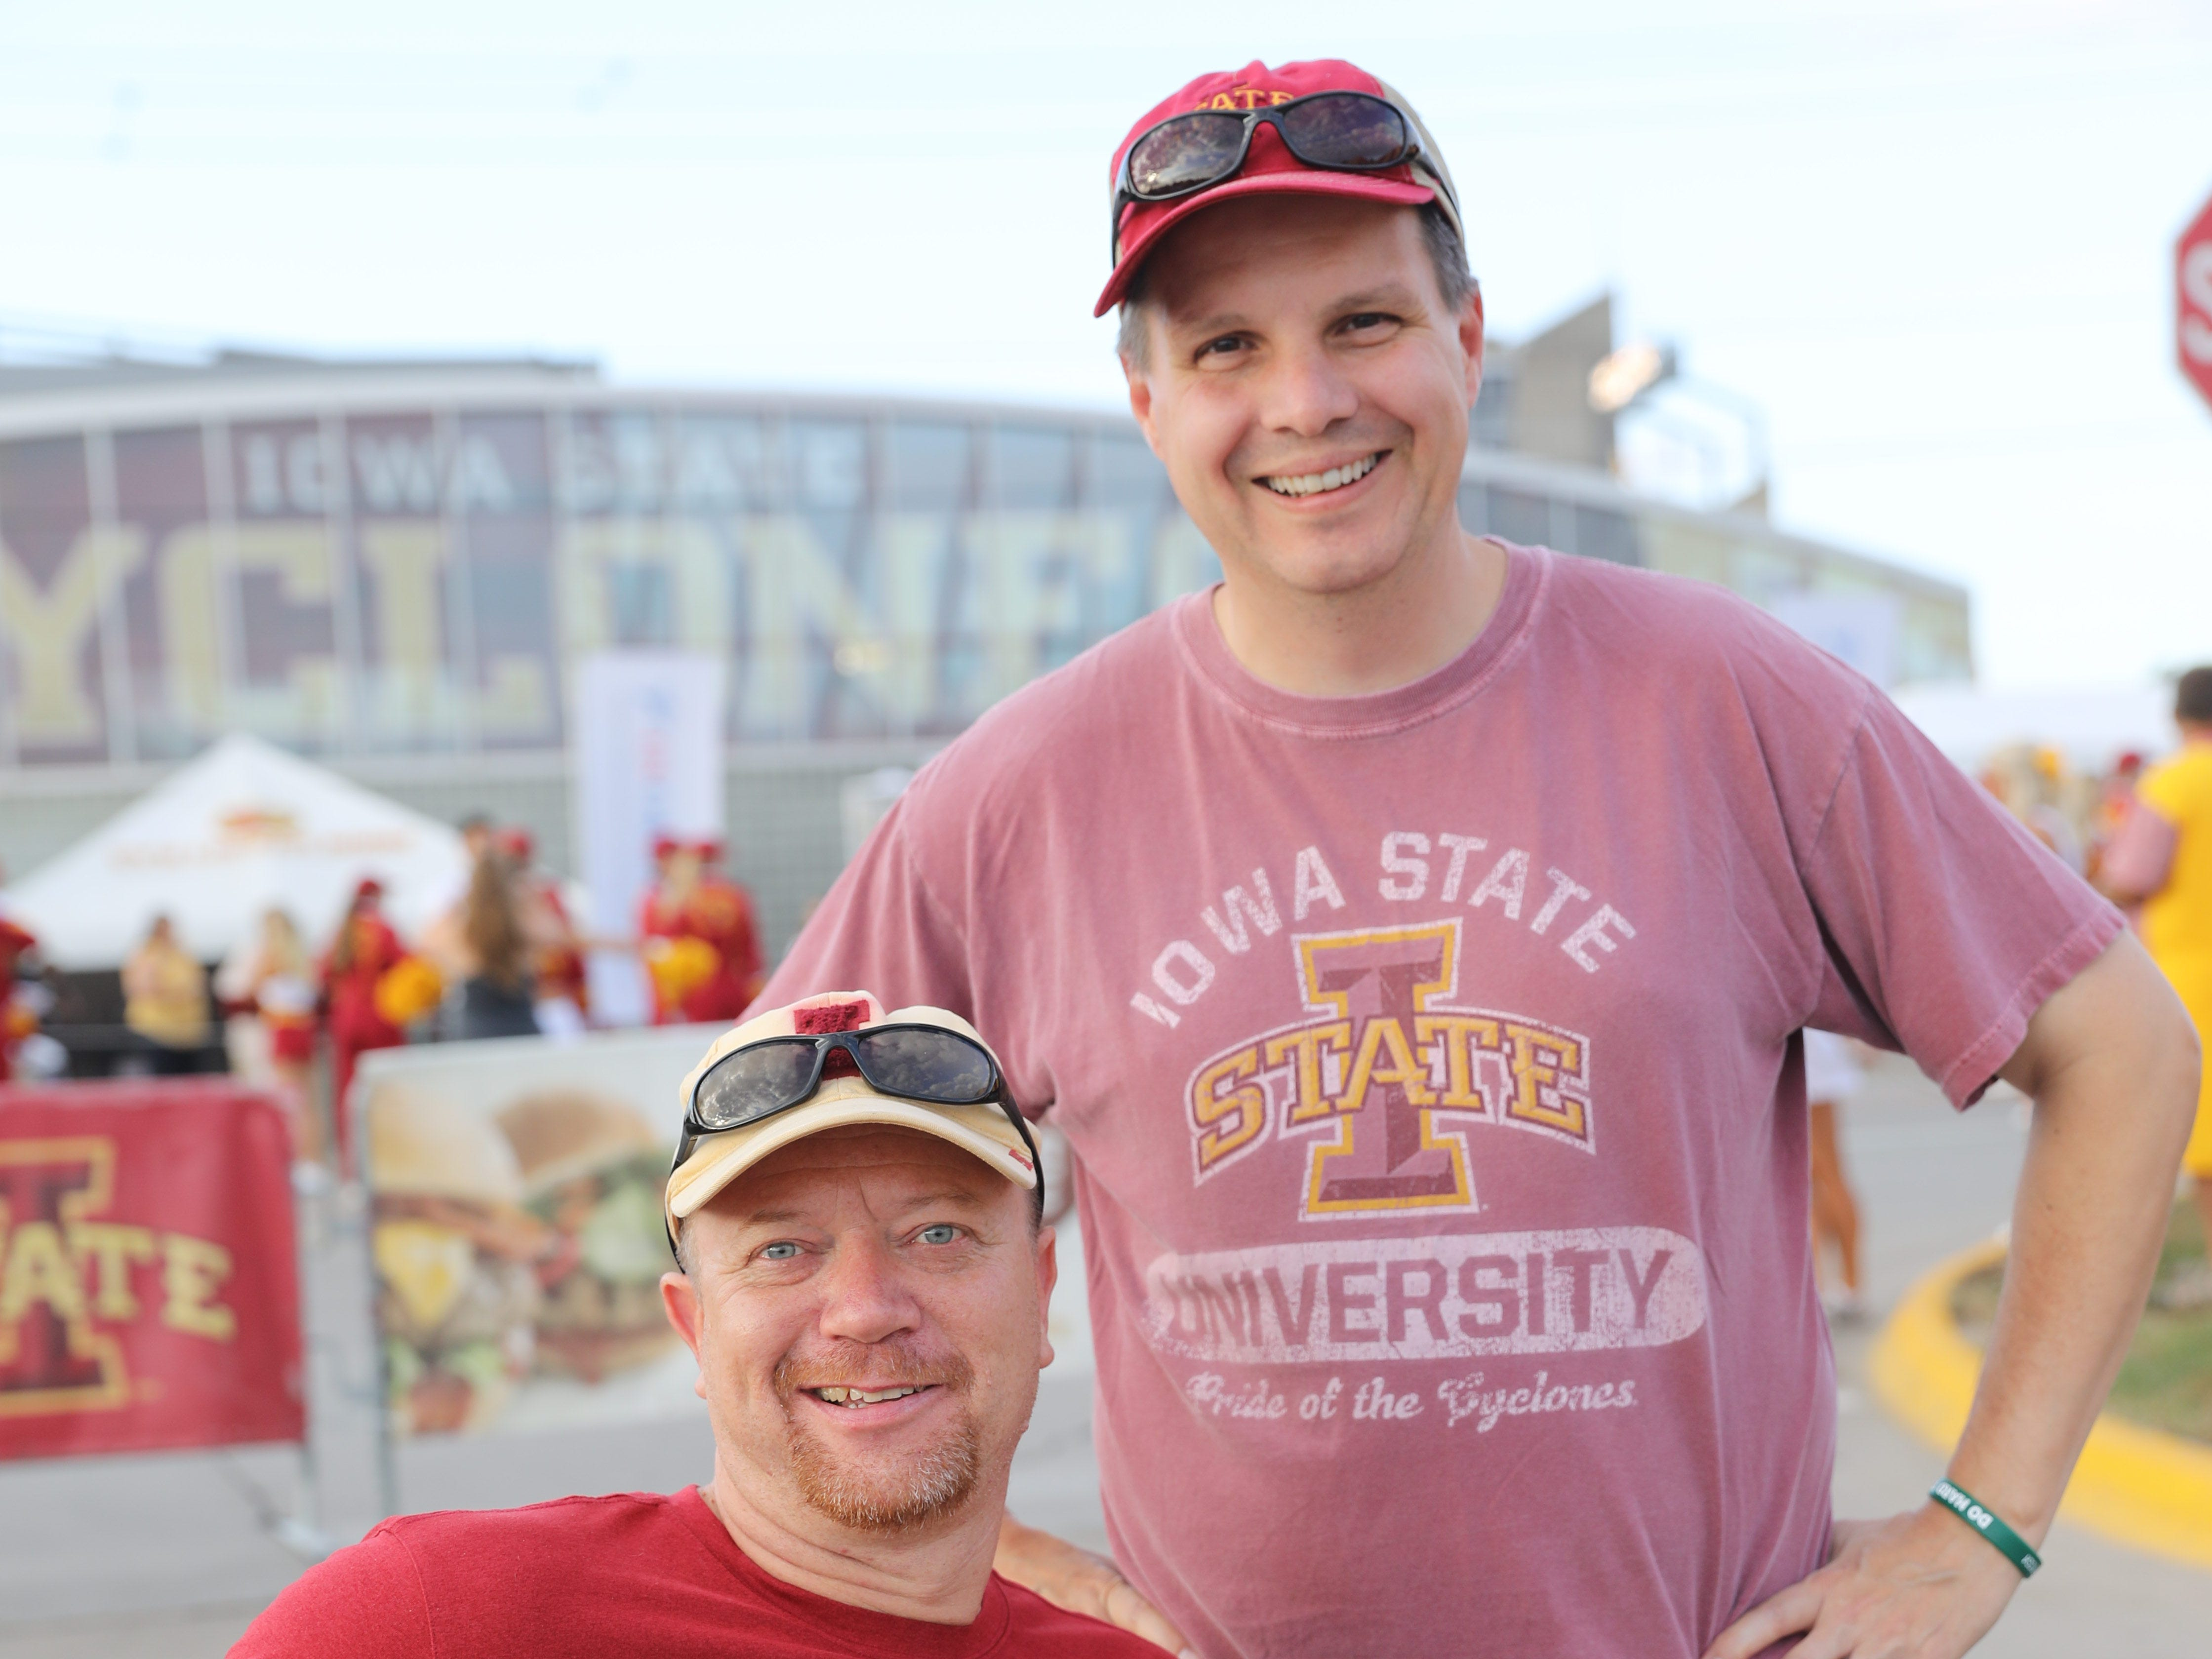 Scott Turczynski of Elkhart (left) and Doug Samuelson of Des Moines, Saturday, Sept. 15, 2018, before the Iowa State football game against Oklahoma in Ames.